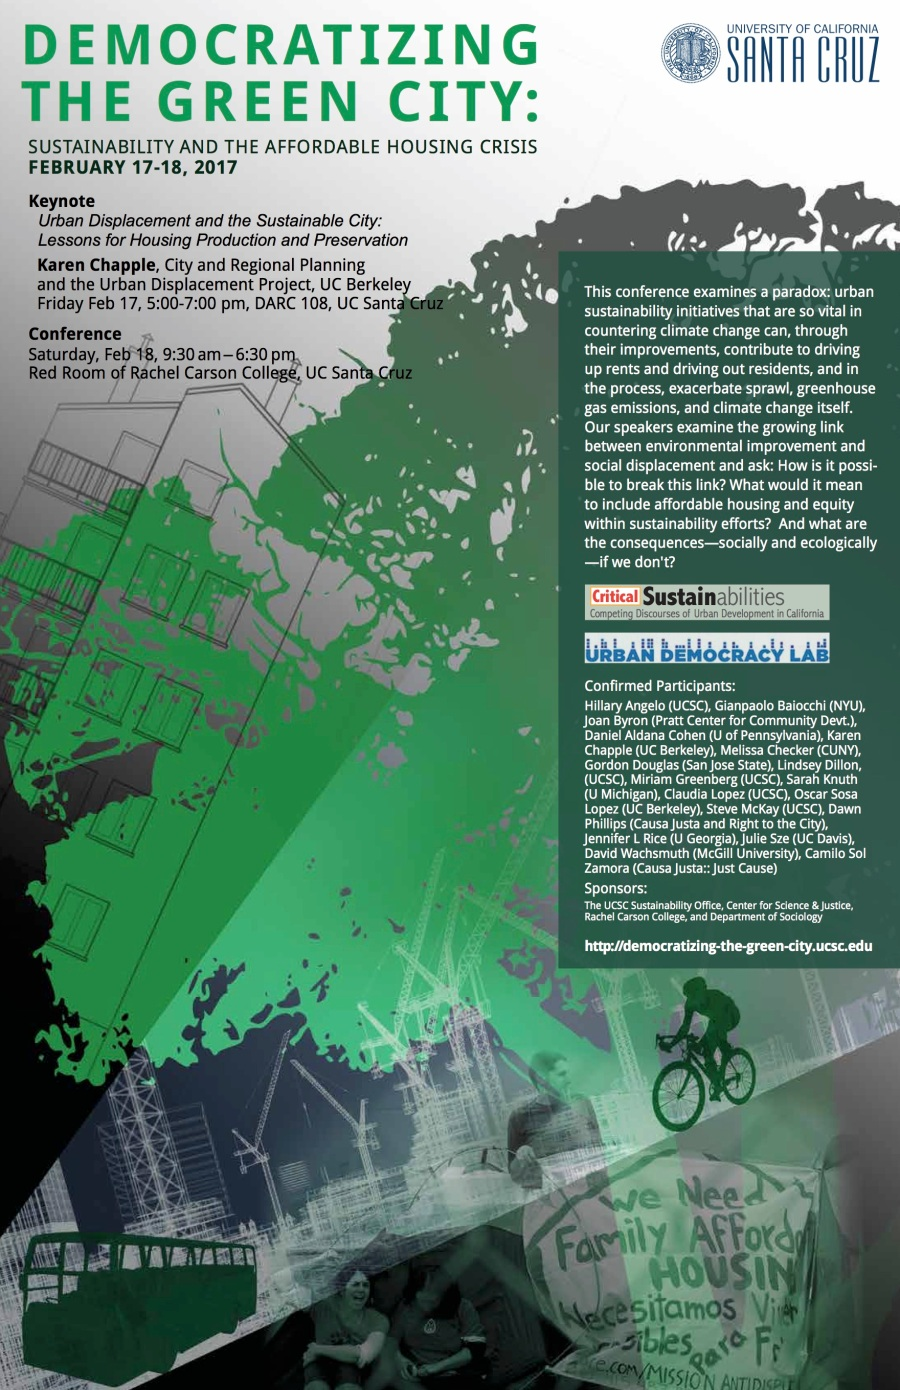 democratizing-green-city-poster